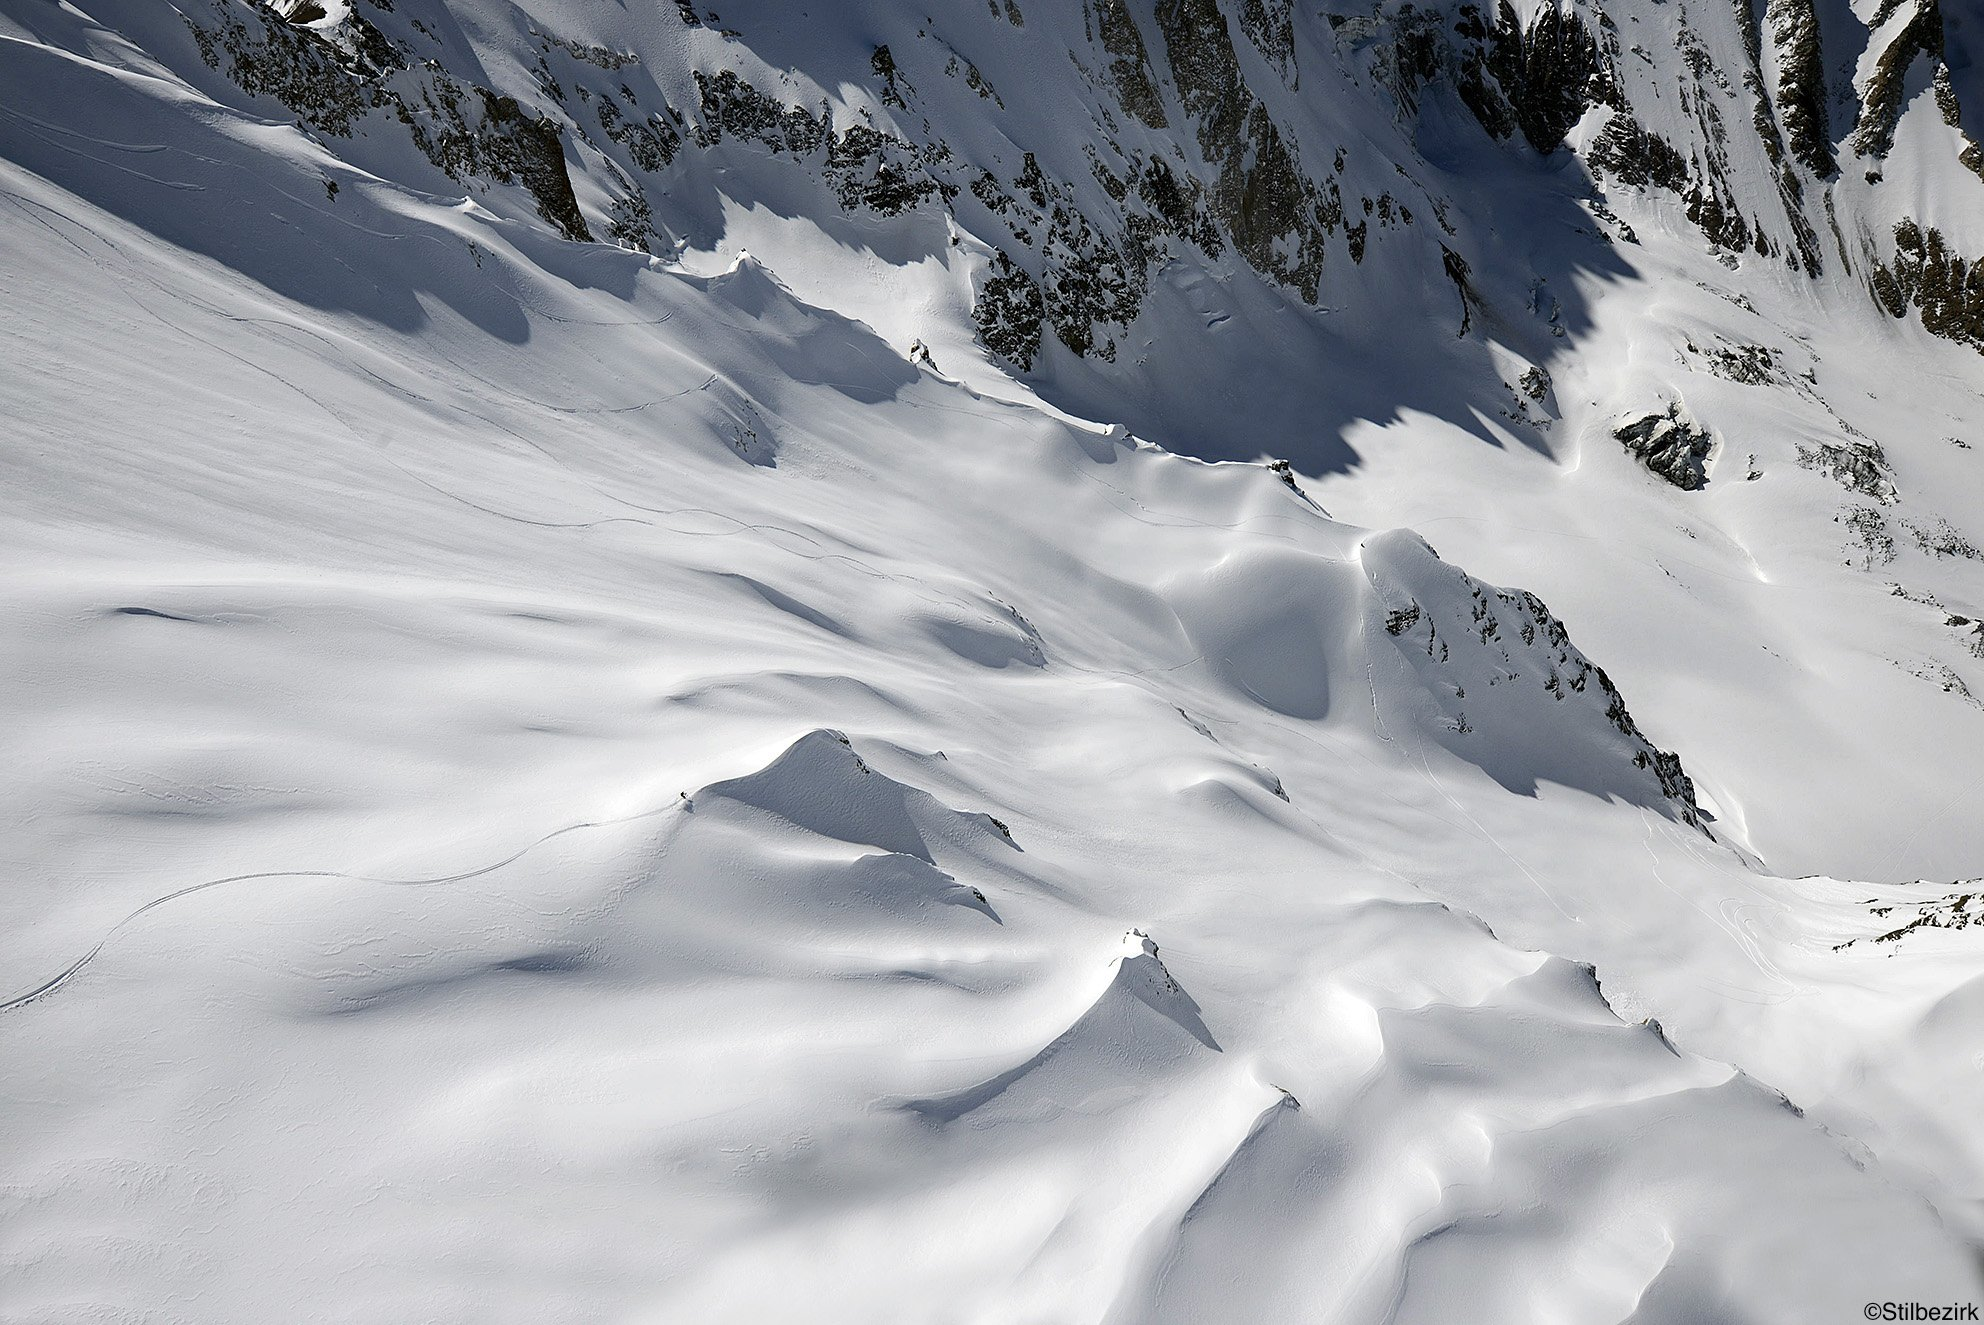 south america ski guide: where to go and how to get there | luex